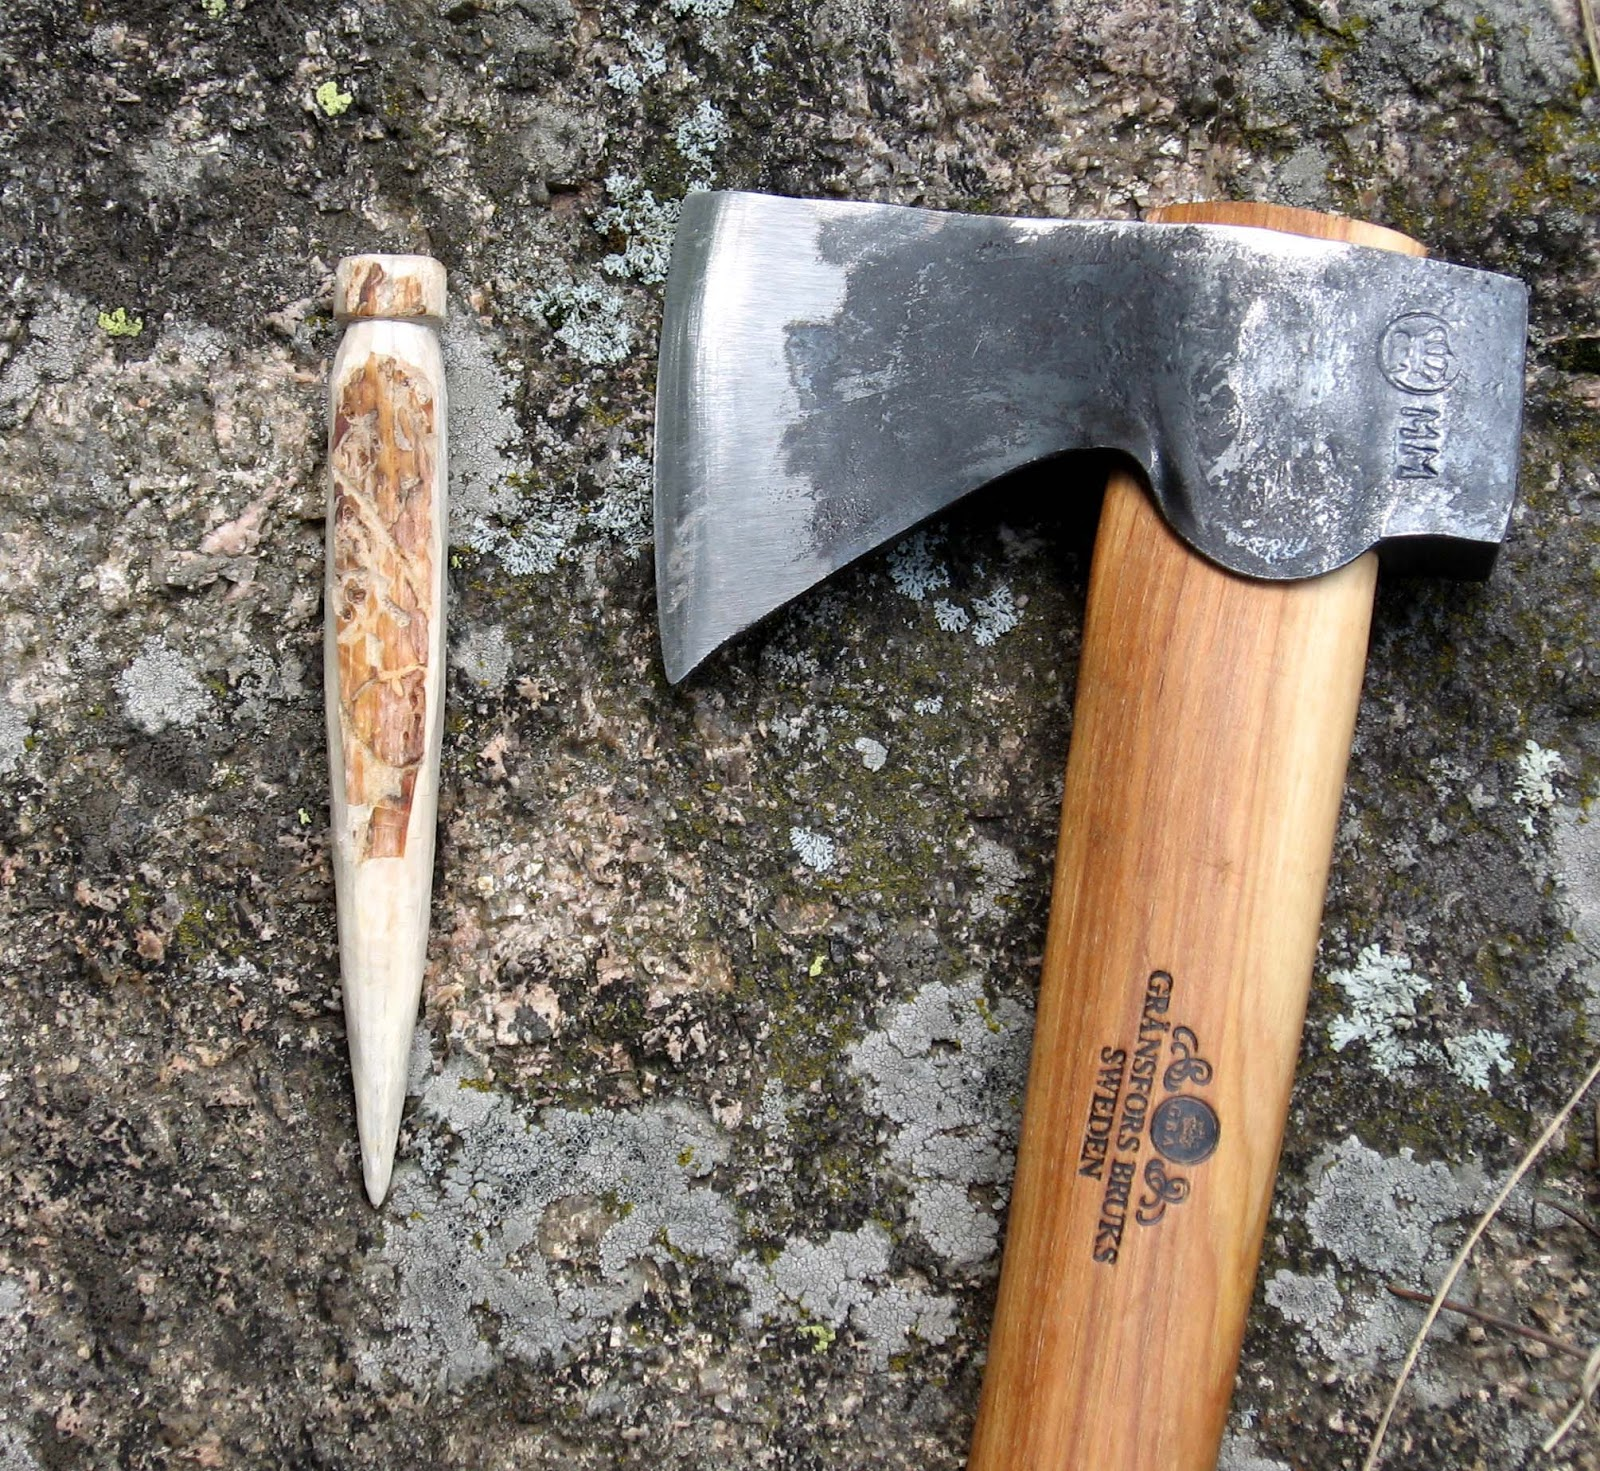 Rocky Mountain Bushcraft REVIEW The Gransfors Bruks Wildlife Hatchet Finely Crafted By Elves Hiding In Sweden